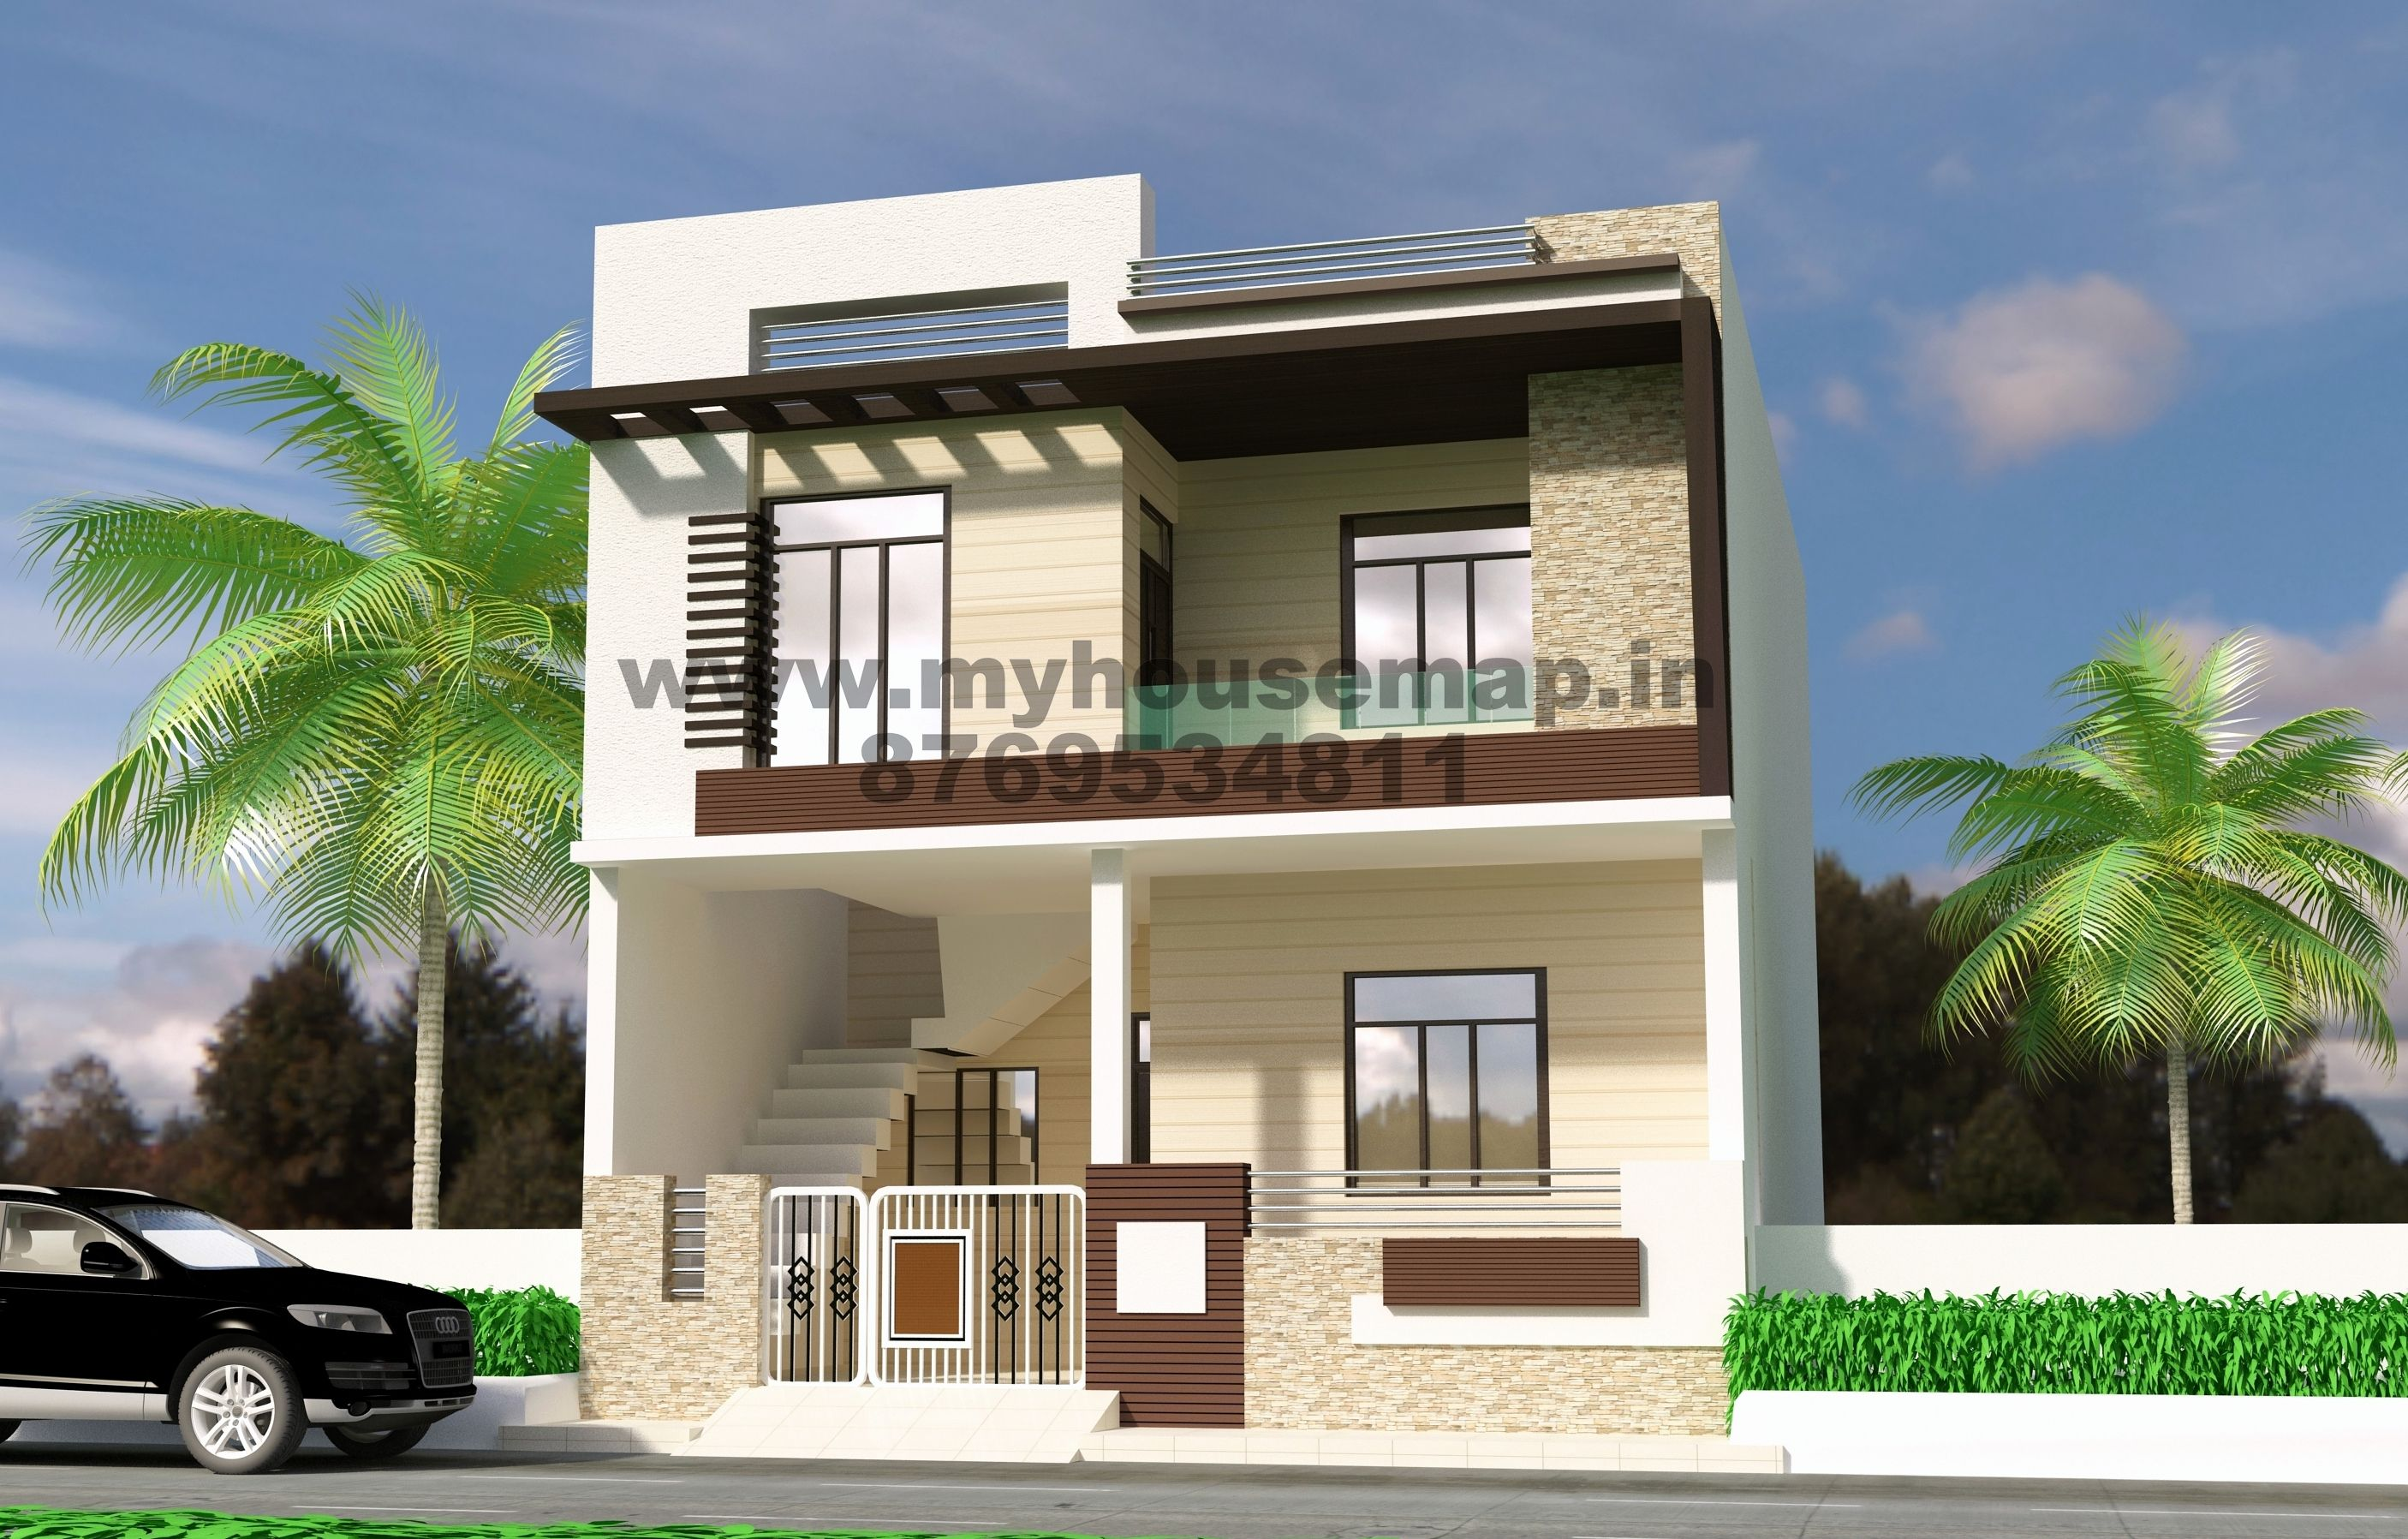 Simple house plans front view fresh front elevation design modern duplex